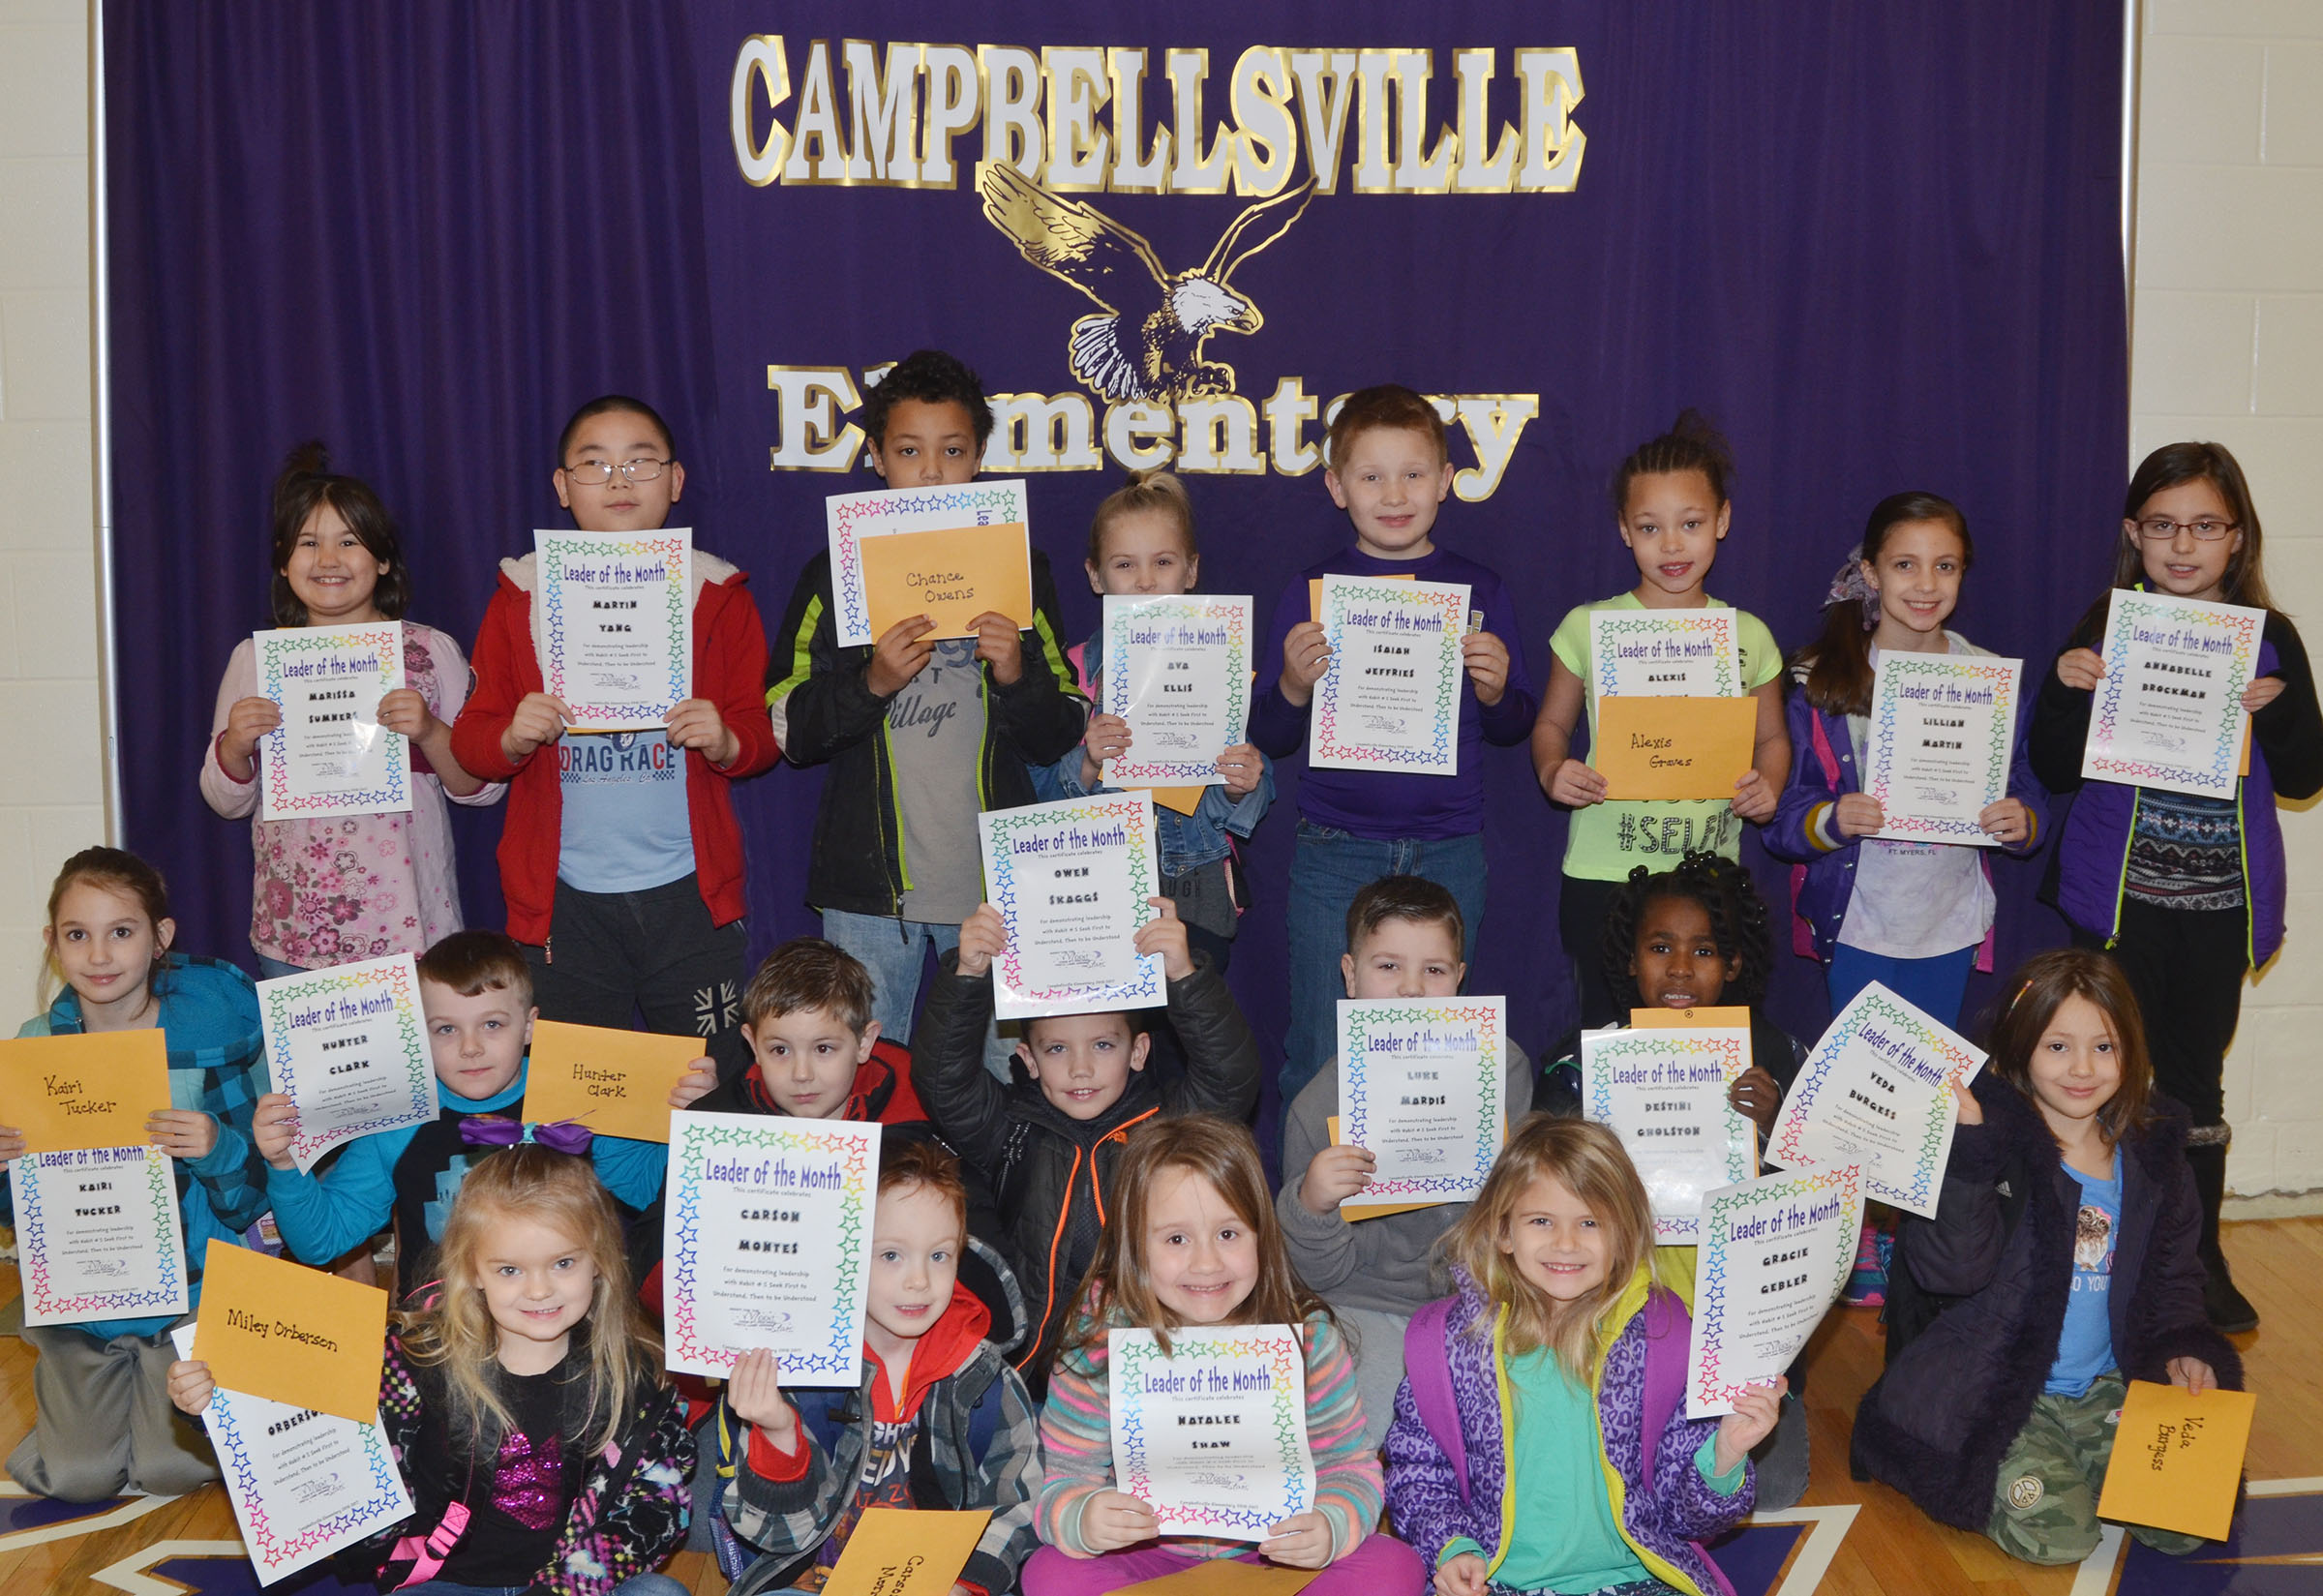 From left, front, are kindergarteners Miley Orberson, Carson Montes, Natalee Shaw and Gracie Gebler. Second row, second-grader Kairi Tucker, first-grader Hunter Clark, second-grader Seamus Huber, first-graders Owen Skaggs, Luke Mardis and Destini Gholston and kindergartener Veda Burgess. Back, second-grader Marissa Sumners, third-graders Martin Yang and Chance Owens, second-grader Ava Ellis, third-graders Isaiah Jeffries and Alexis Graves, first-grader Lillian Martin and second-grader Annabelle Brockman. Third-grader Cody Tamez is absent from the photo.